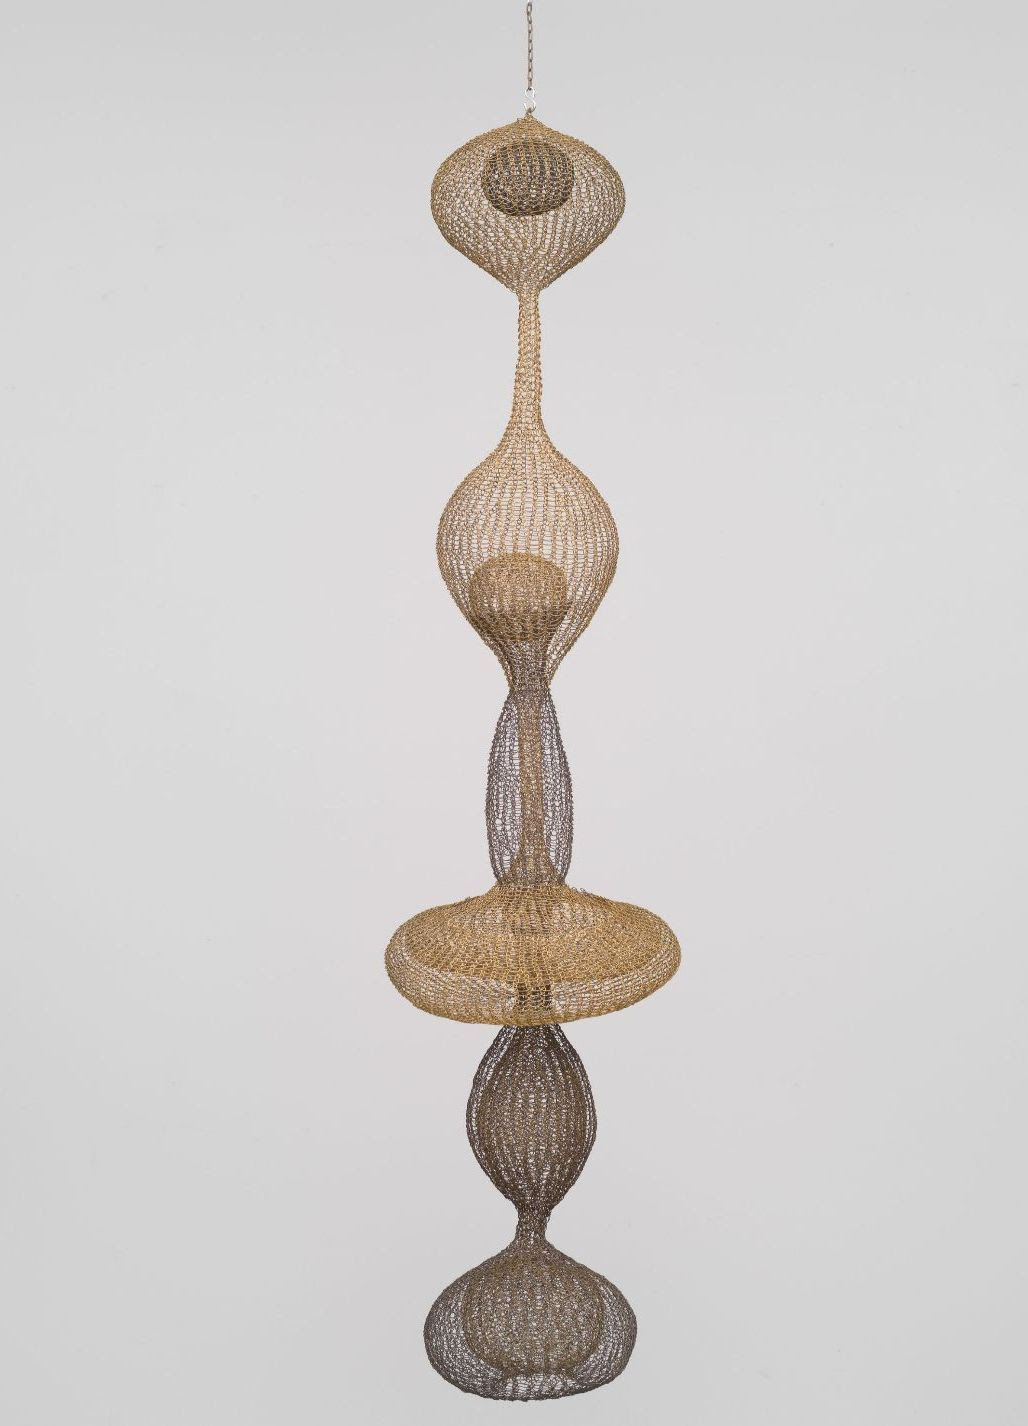 Ruth Asawa, Untitled (S.270, Hanging Six-Lobed, Complex Interlocking Continuous Form within a Form with Two Interior Spheres)